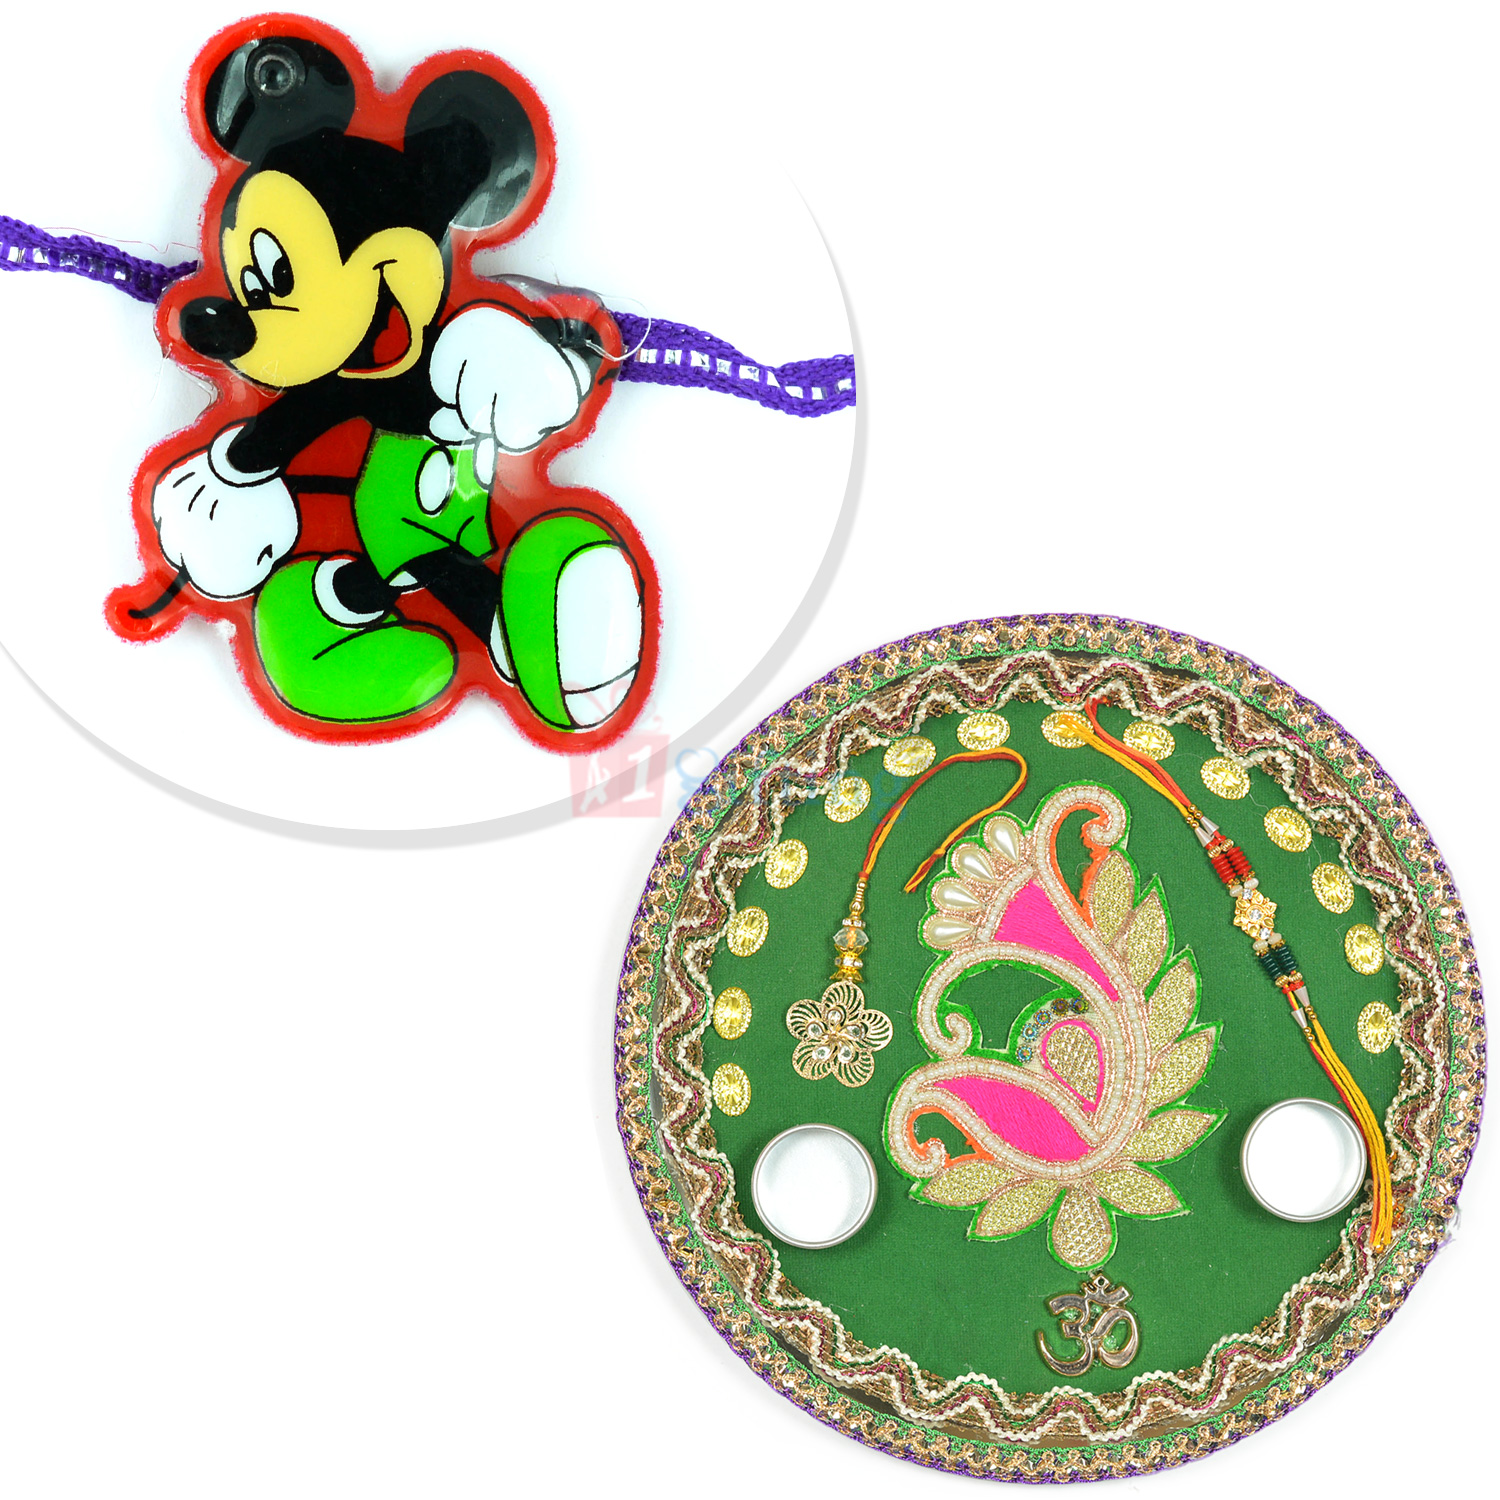 Special Rakhi Pooja Thali and Kids Rakhi Hamper